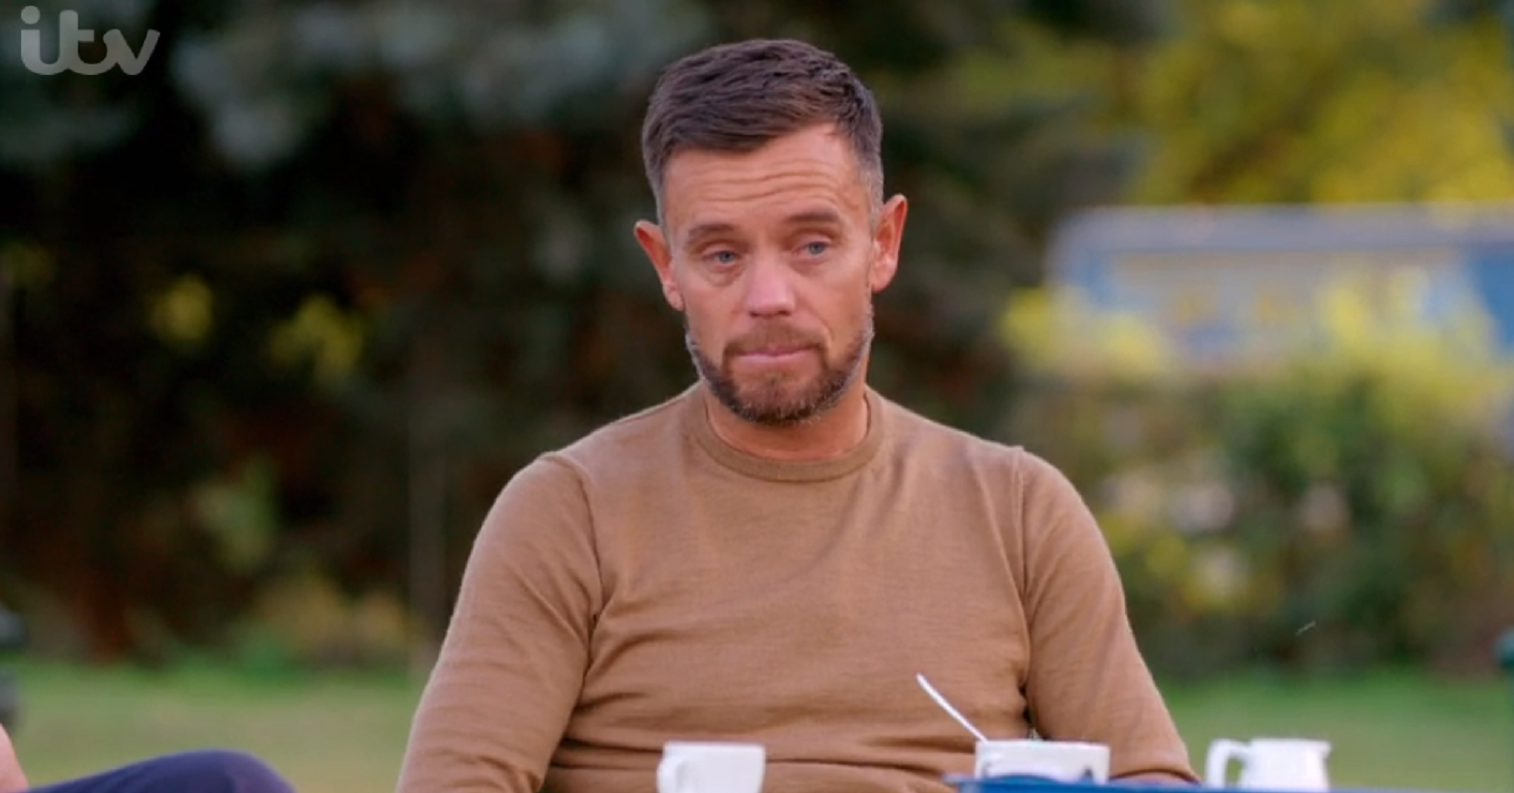 Harry's Heroes: Euro Having a Laugh viewers in tears as ex footballer Lee Hendrie describes suicide attempts